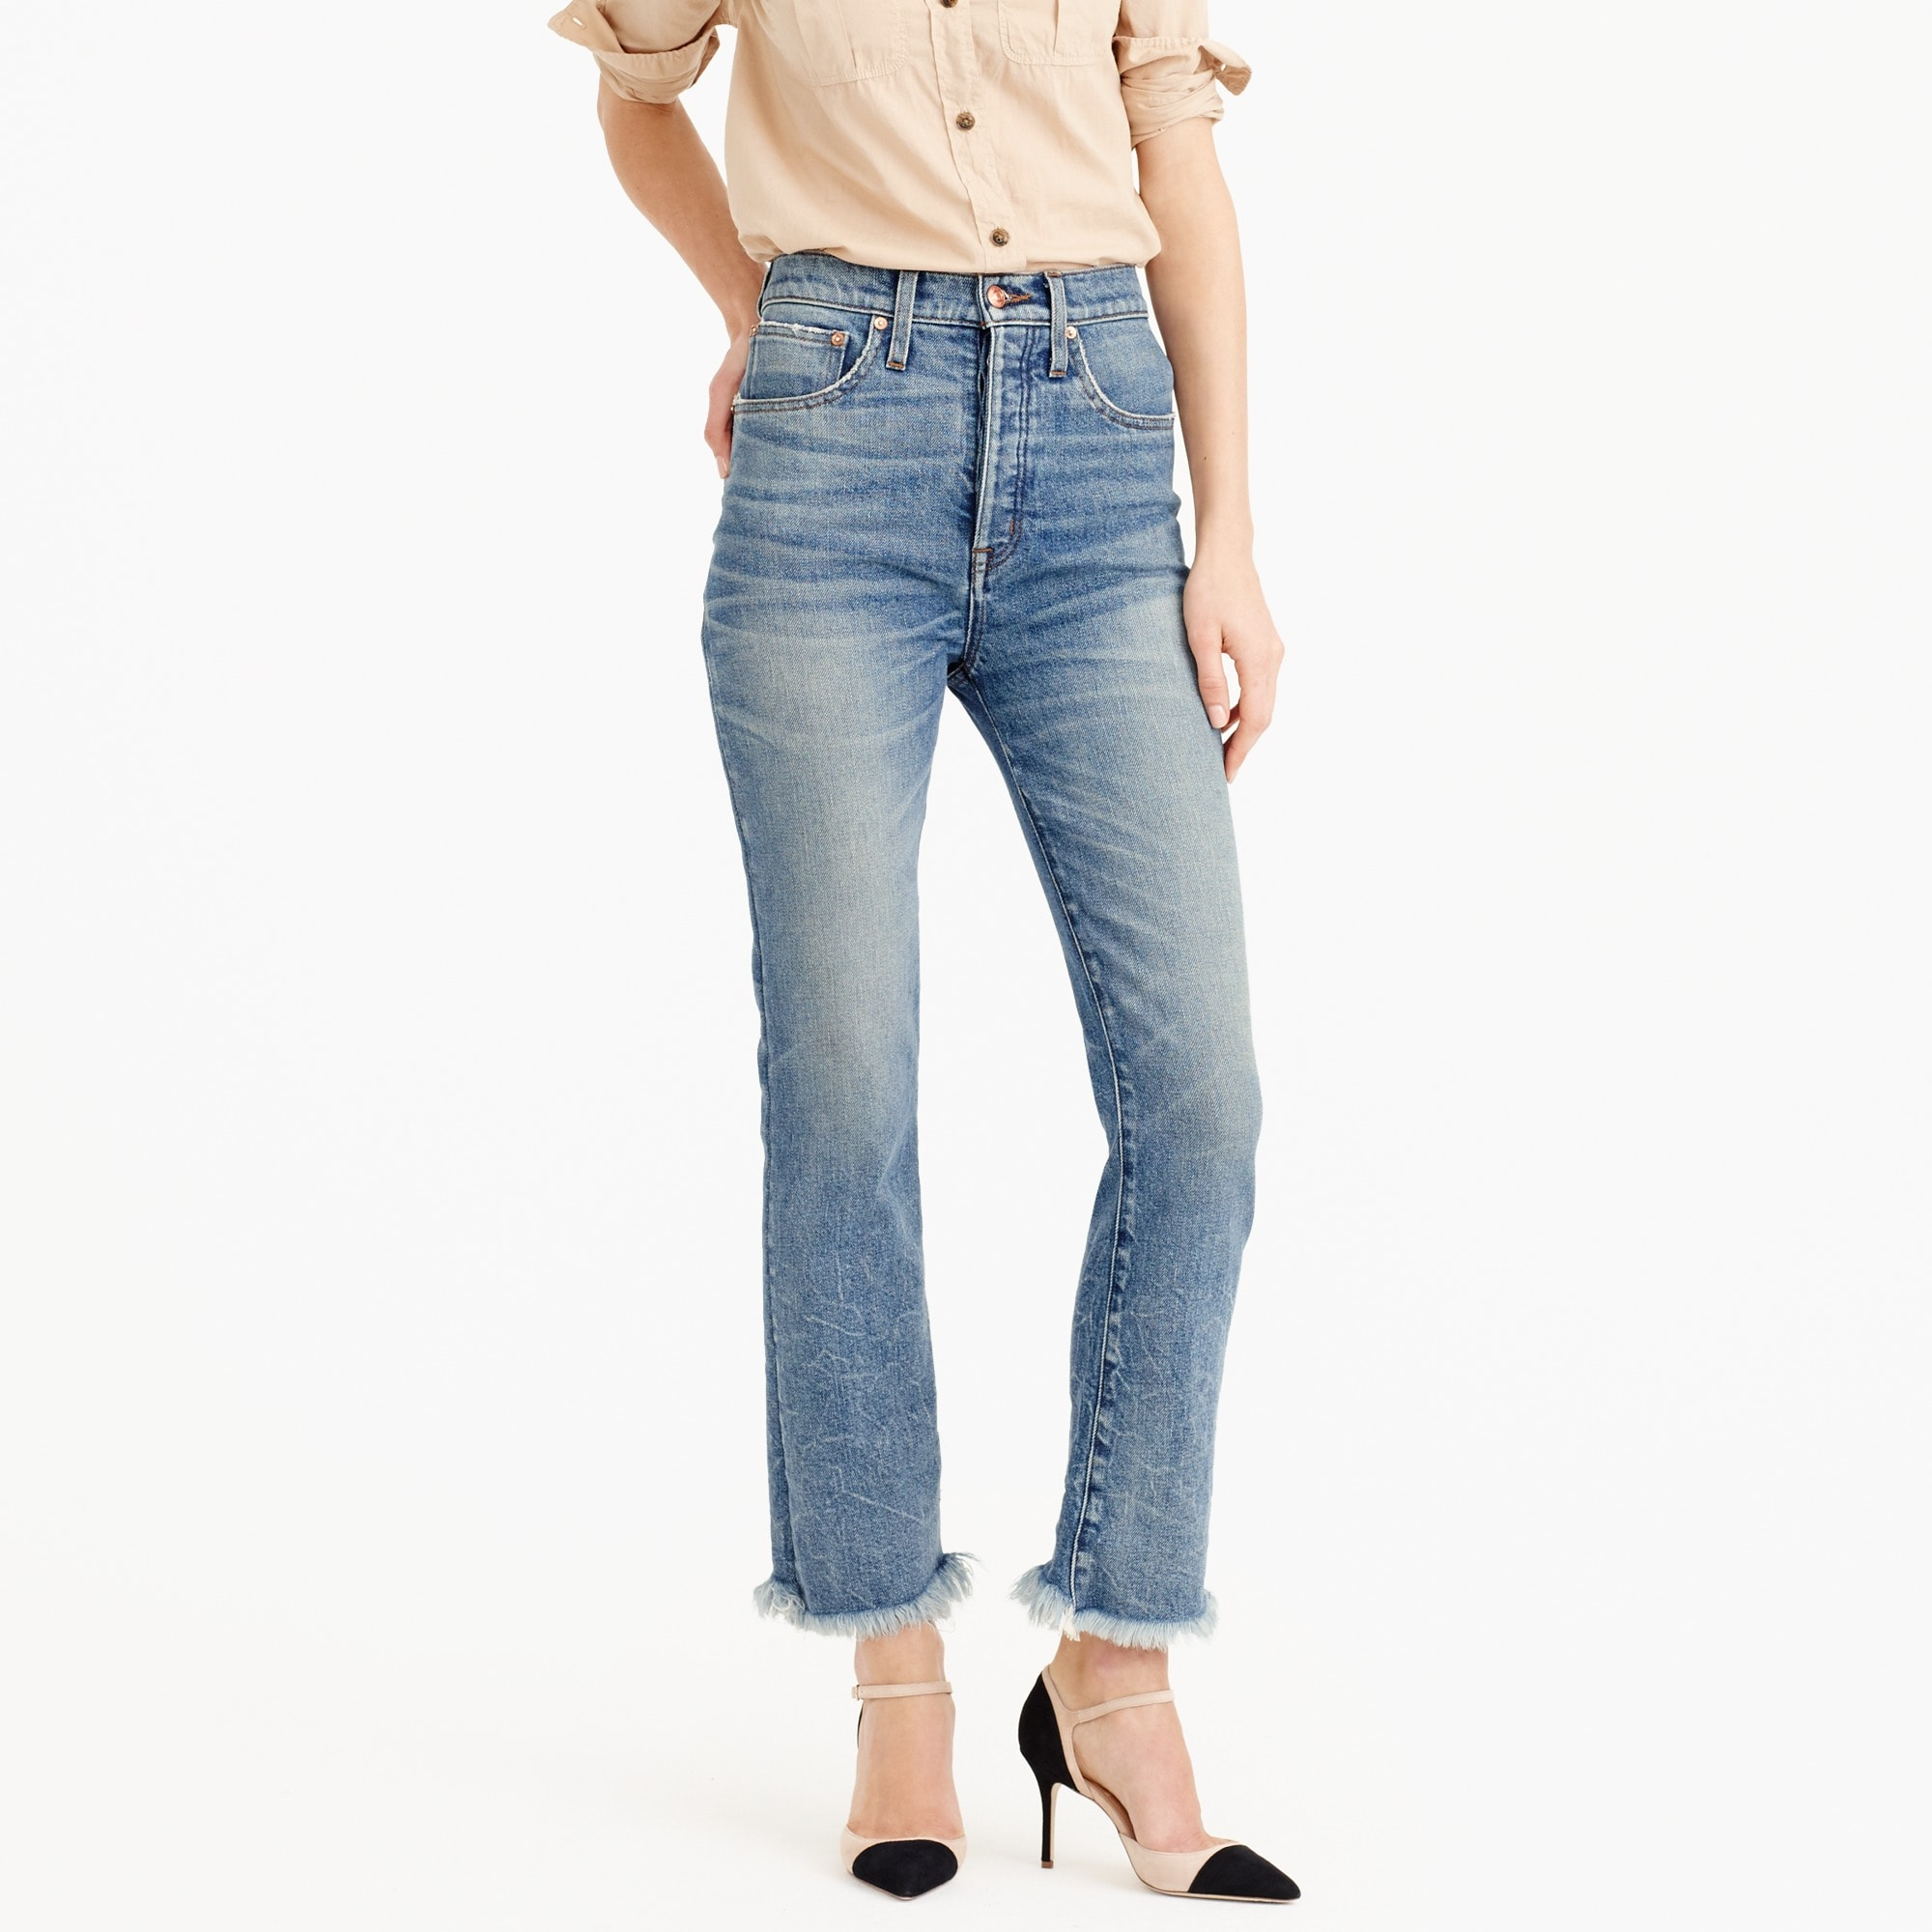 Image 1 for Point Sur relaxed cropped bootcut jean